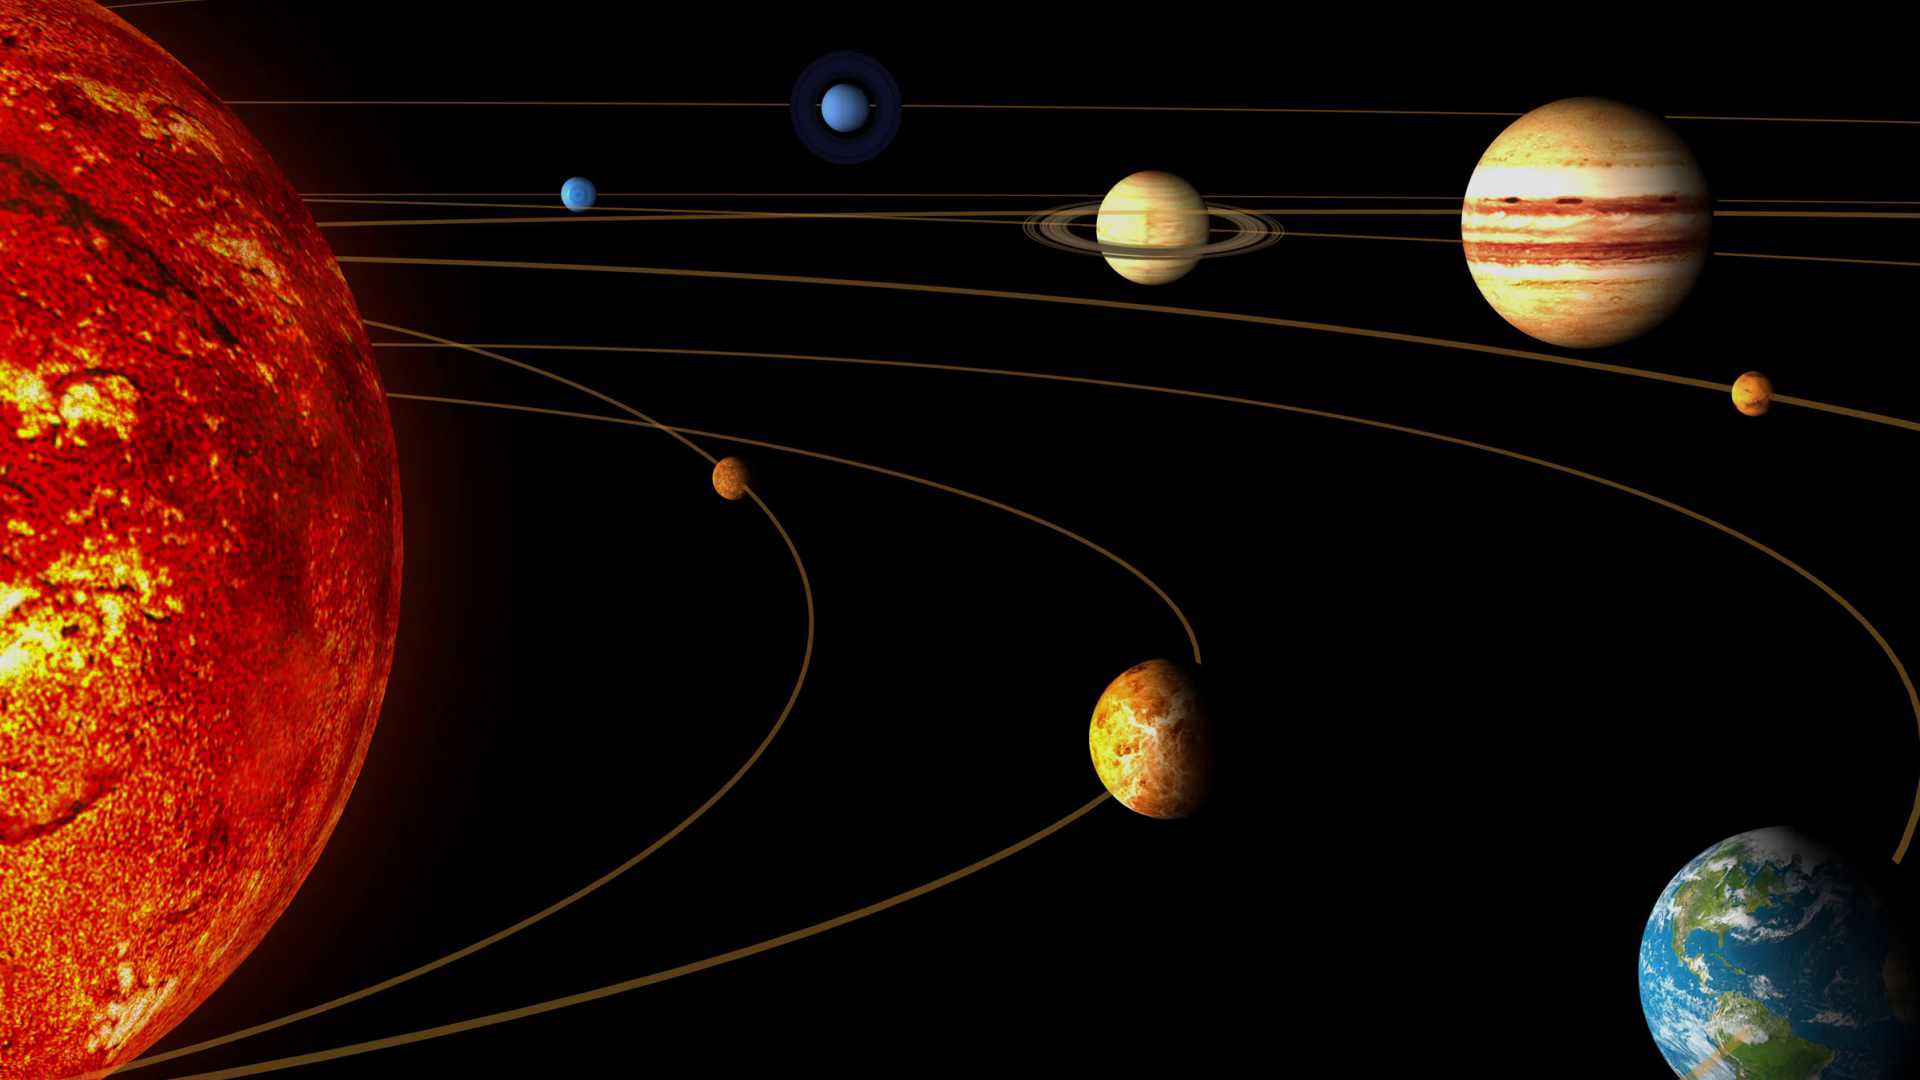 ESA - Europe in the Solar System